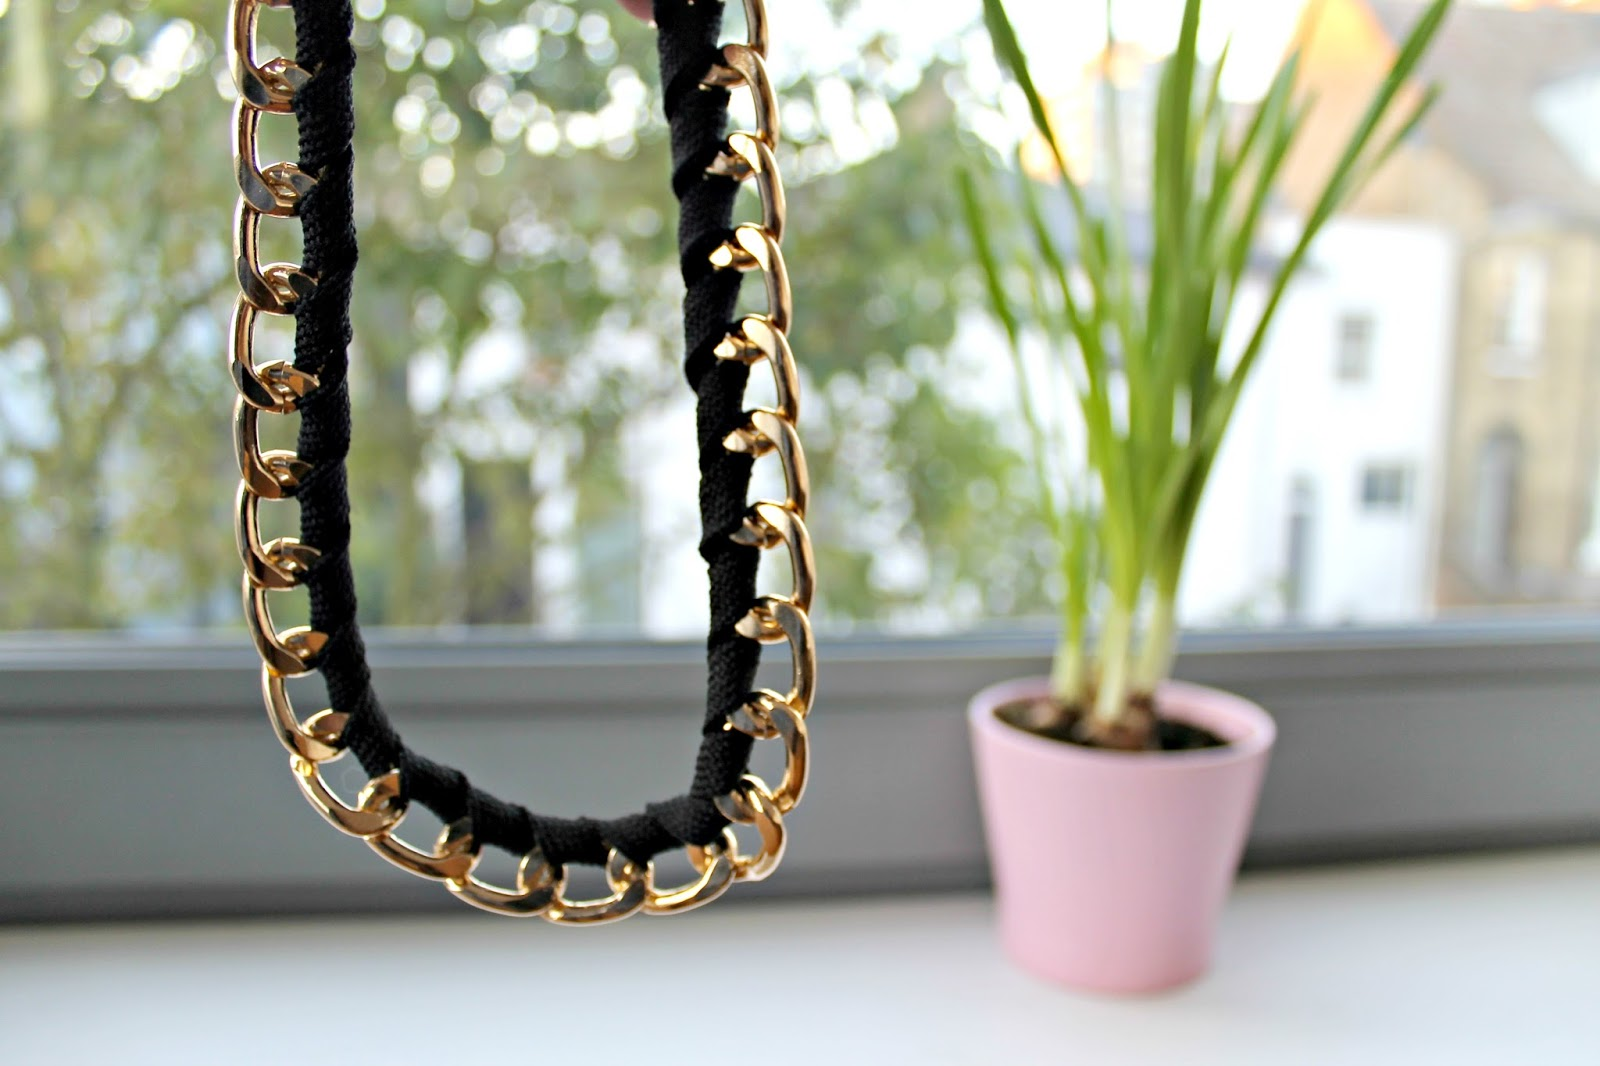 detail of black and gold necklace